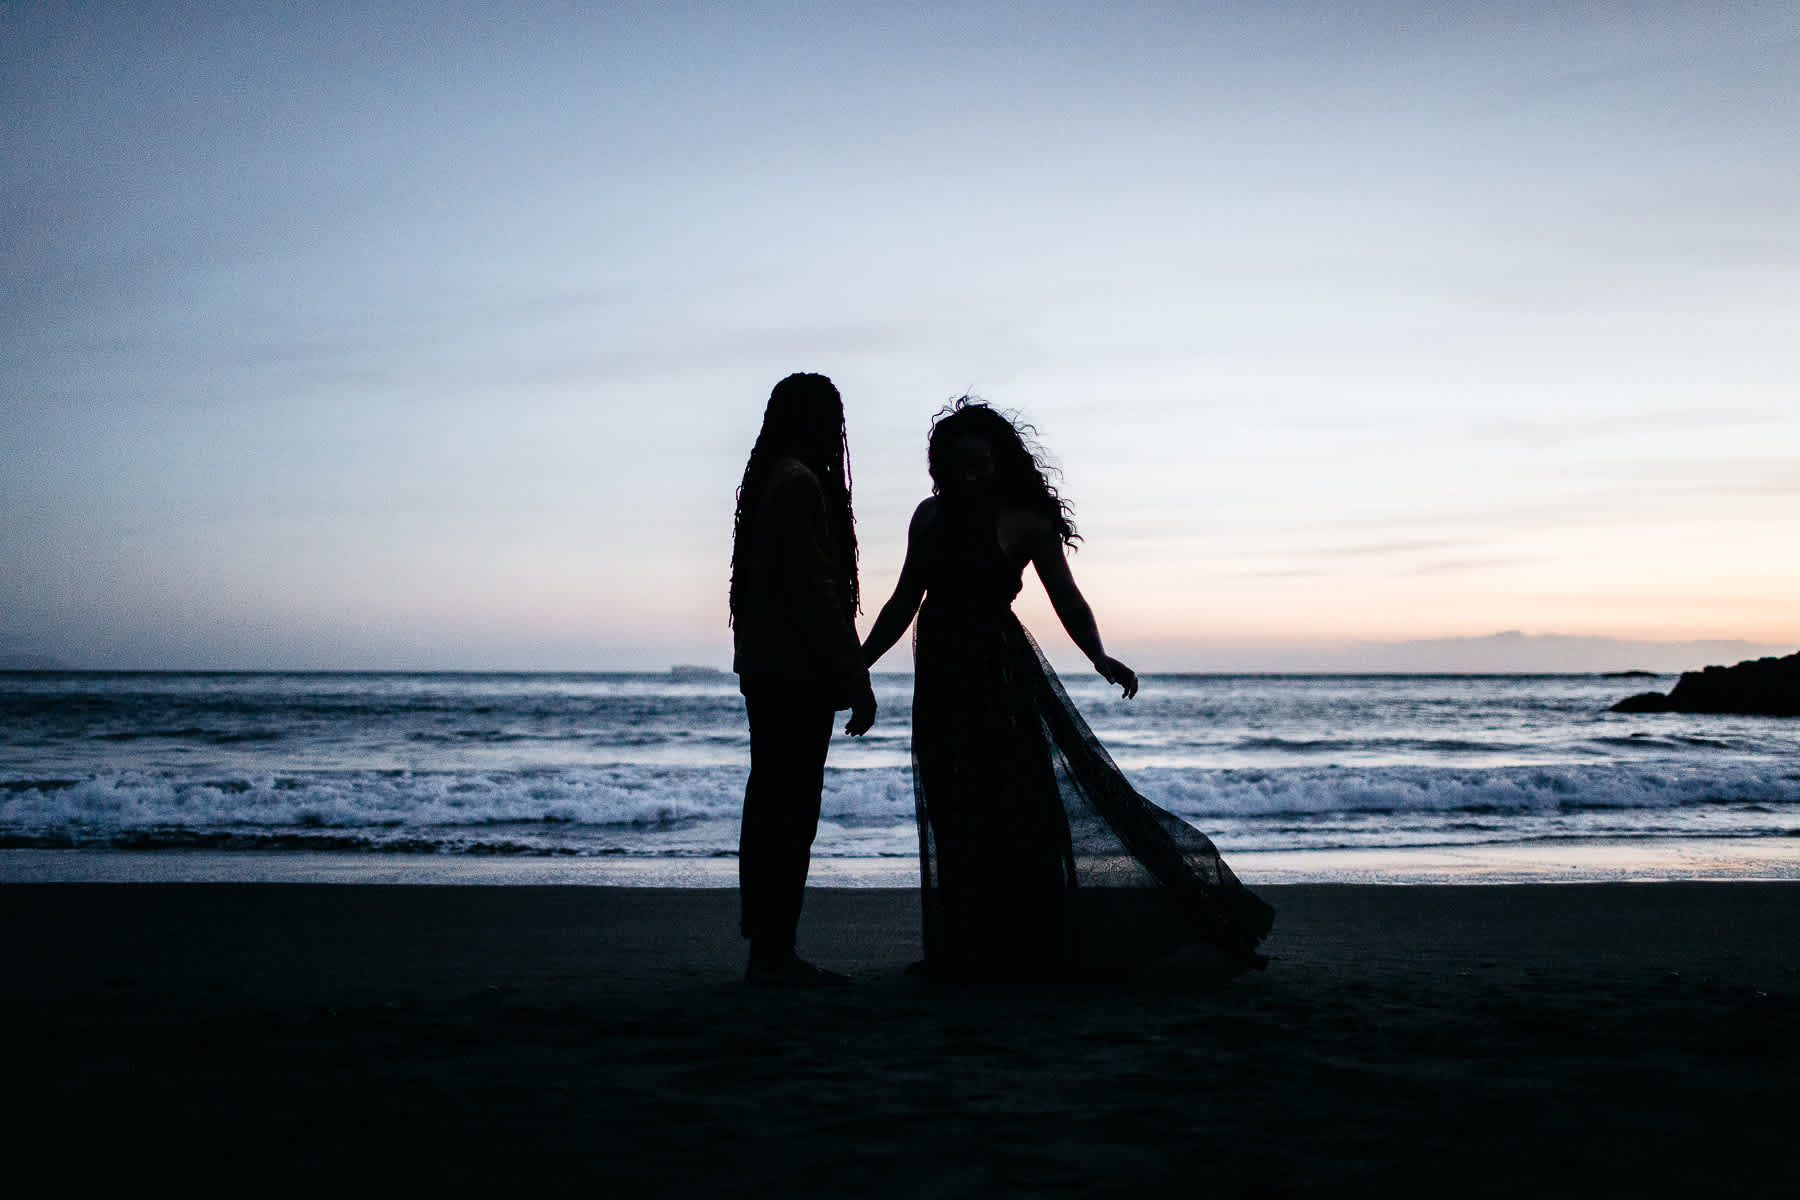 muir-beach-ca-spring-lifestyle-engagement-session-60